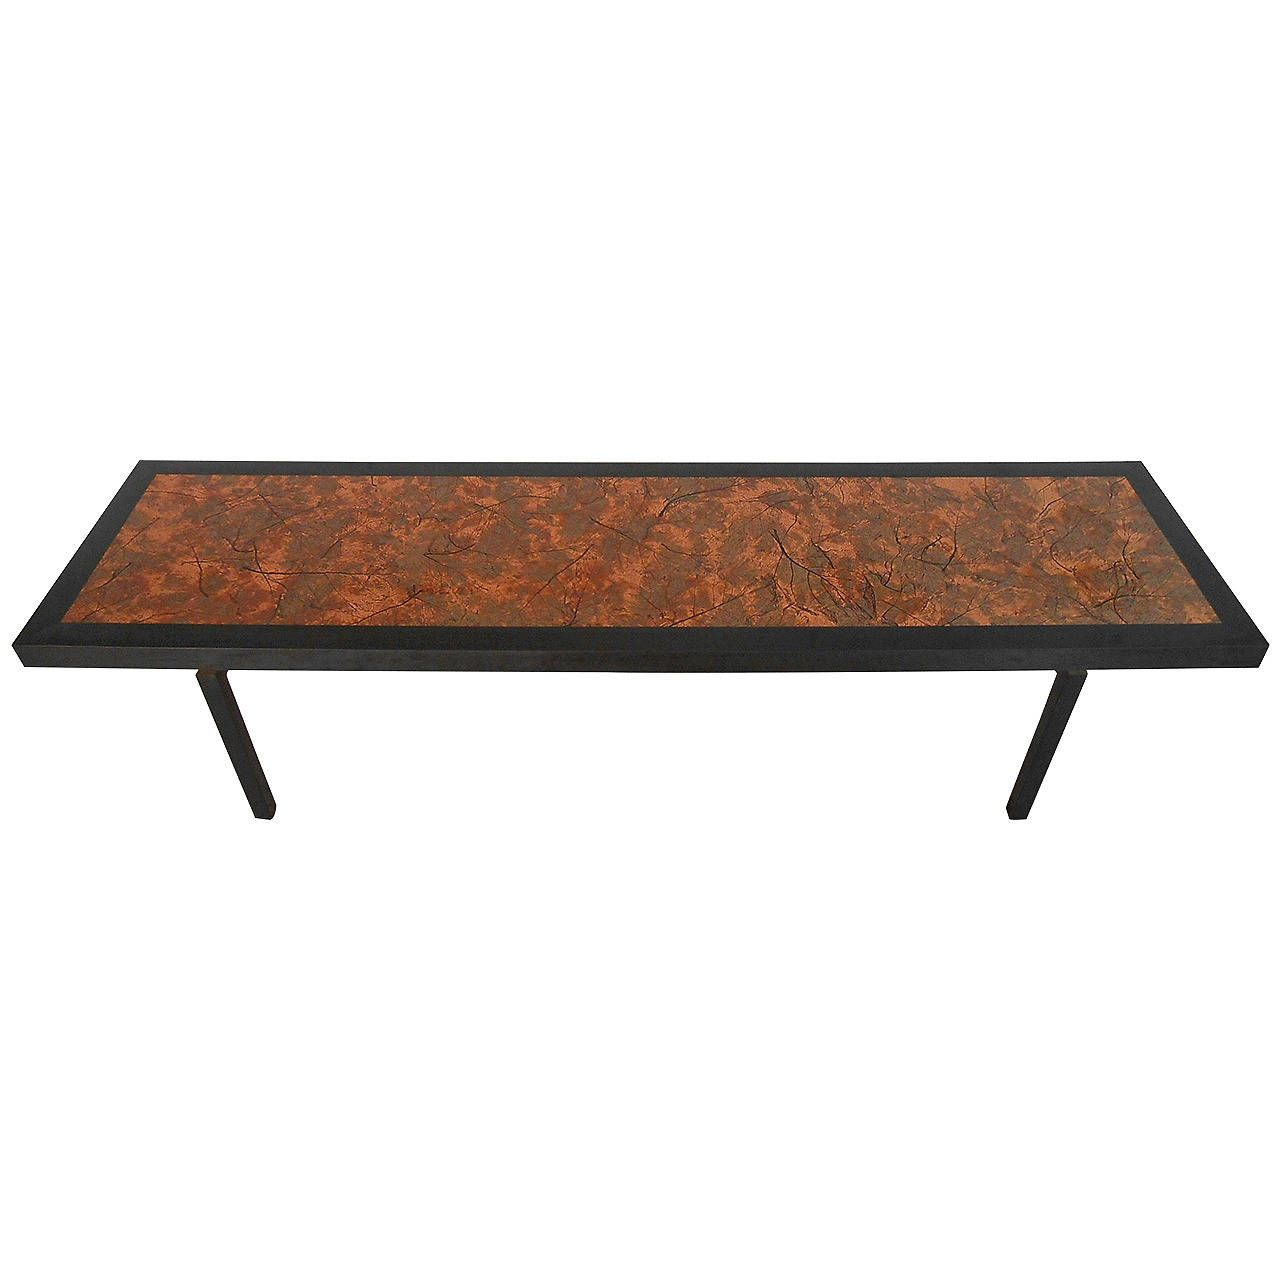 Ethan Allen Copper Top Coffee Table: Pin By Horseman Antiques On Stunning Mid-Century Modern